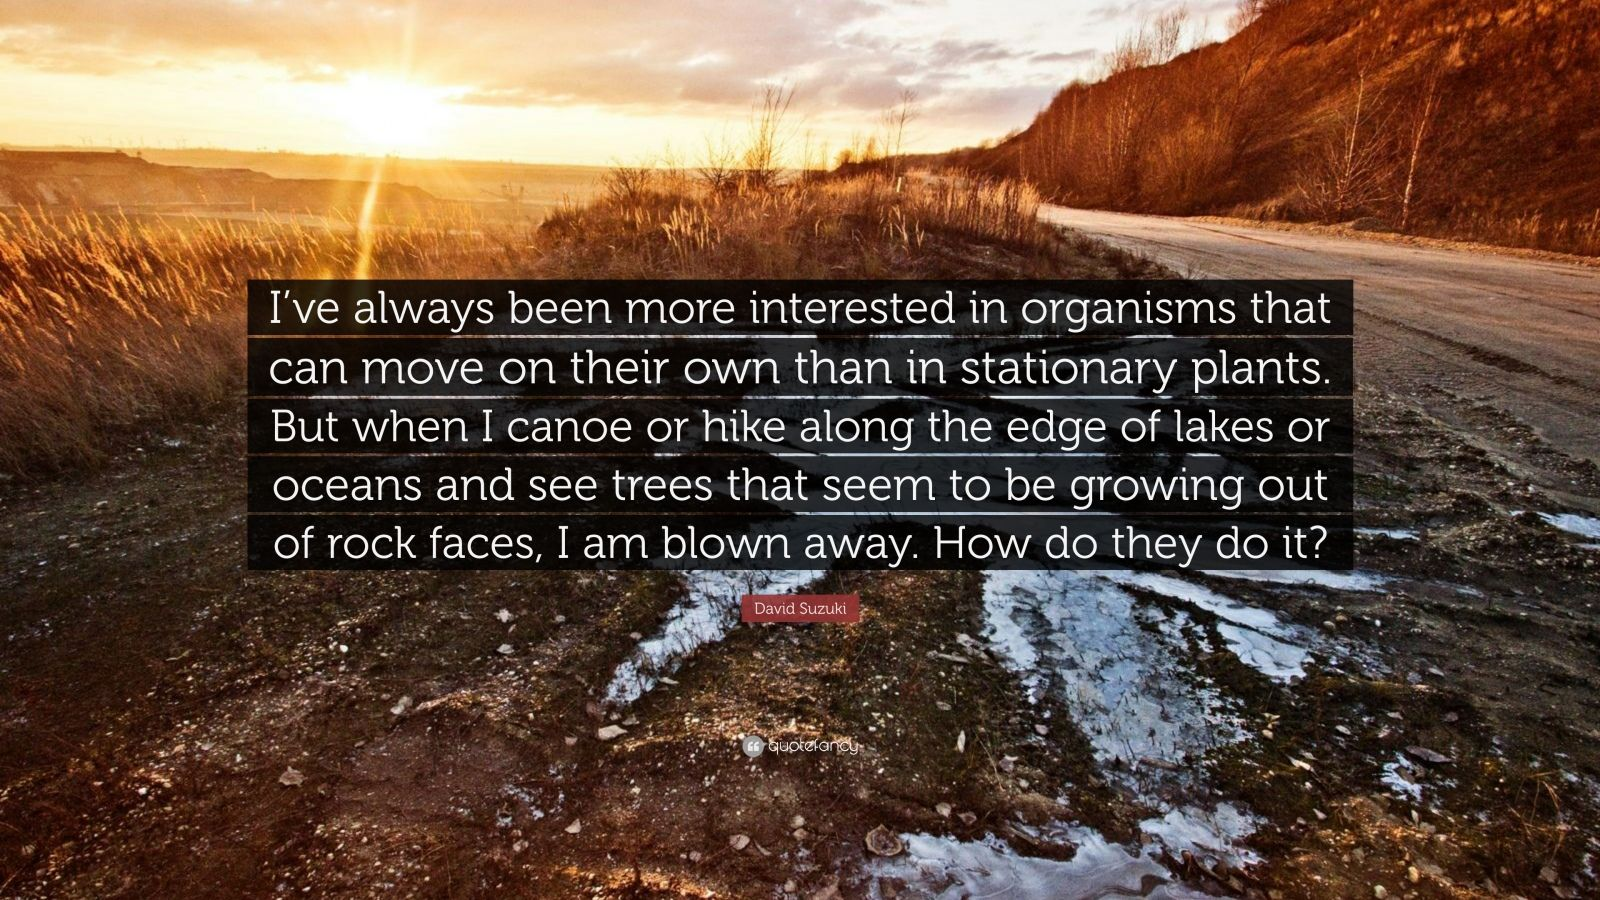 "David Suzuki Quote: ""I've always been more interested in organisms that can move on their own than in stationary plants. But when I canoe or hike along the edge of lakes or oceans and see trees that seem to be growing out of rock faces, I am blown away. How do they do it?"""